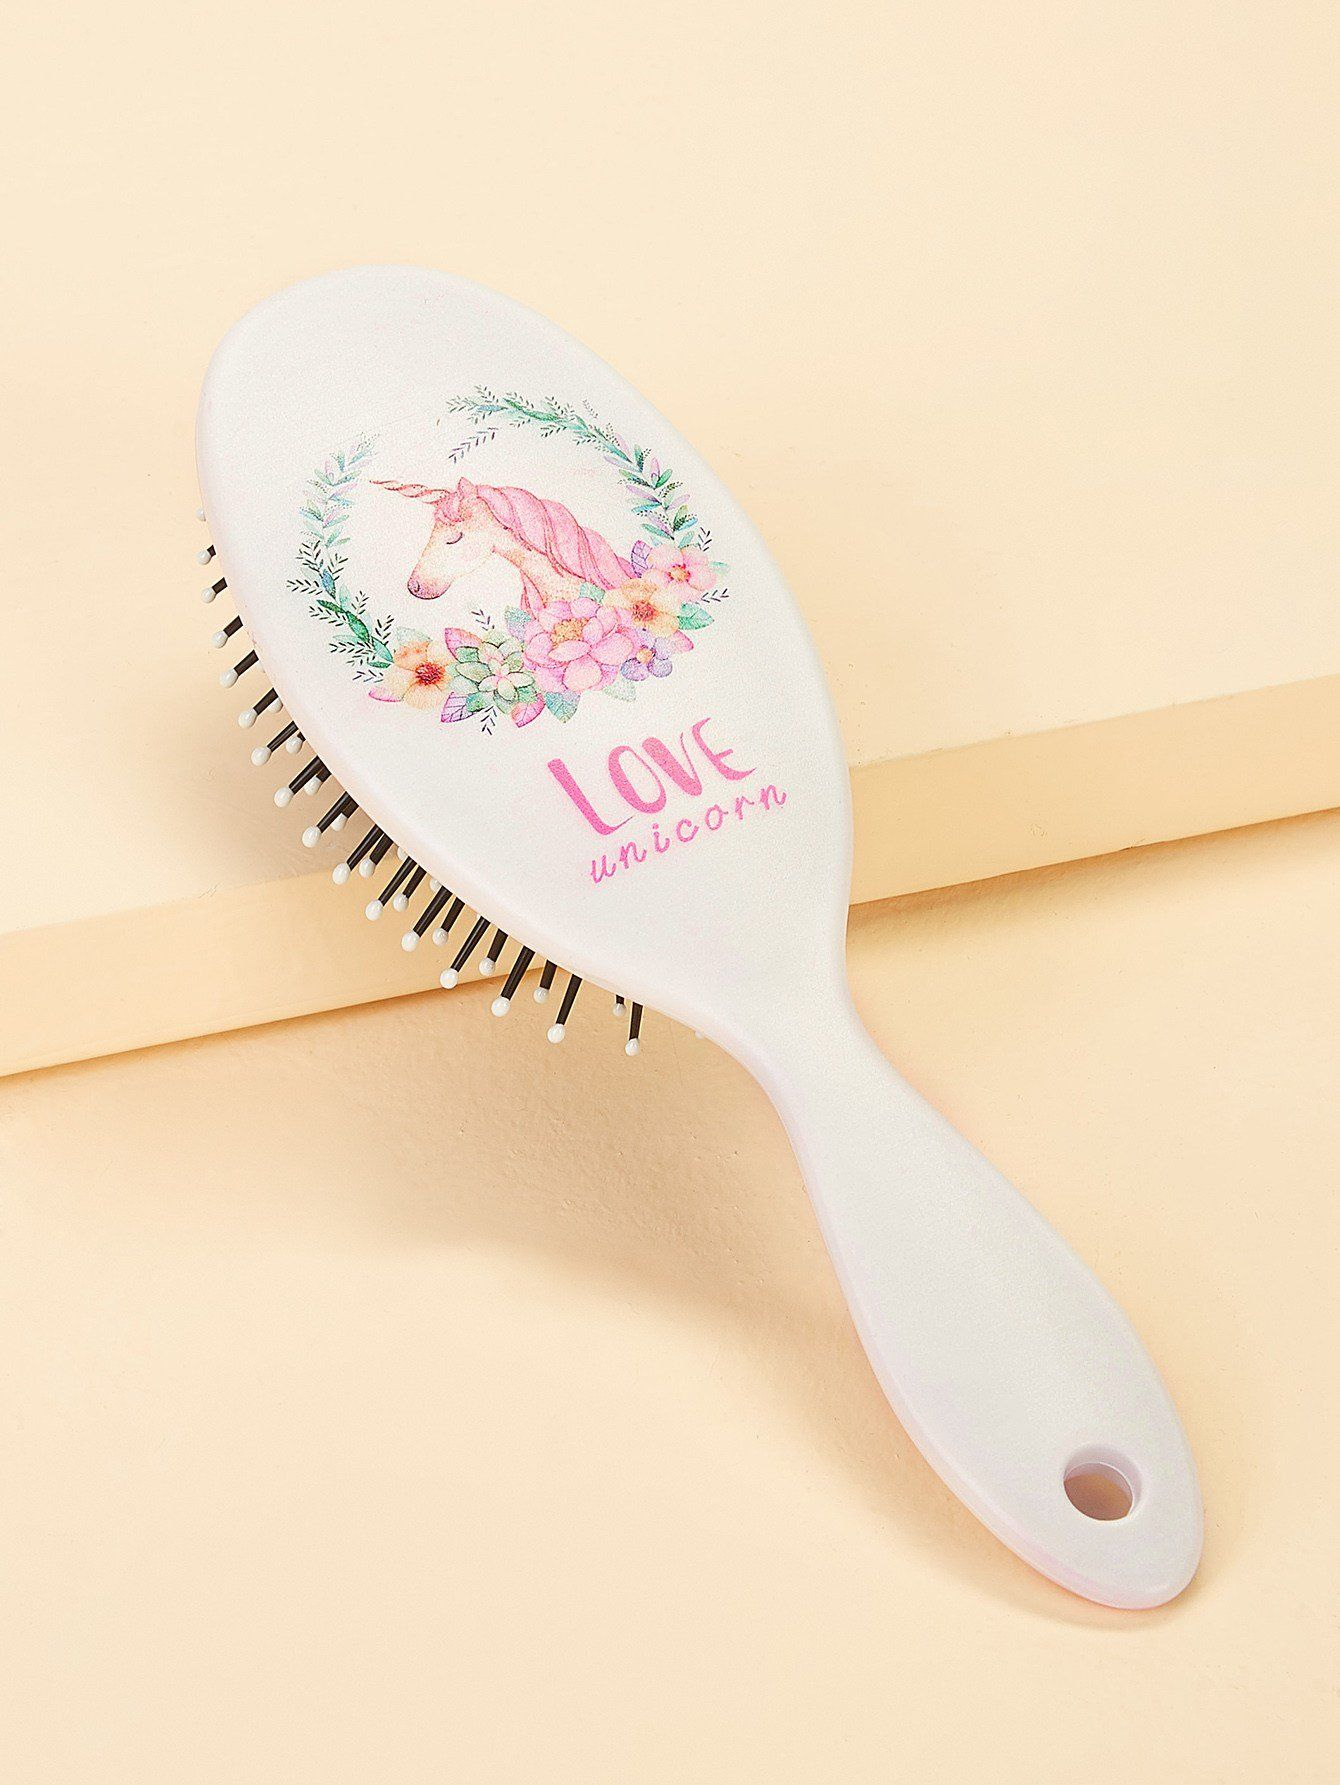 Cartoon Letter Pattern Massage Comb With Images Cartoon